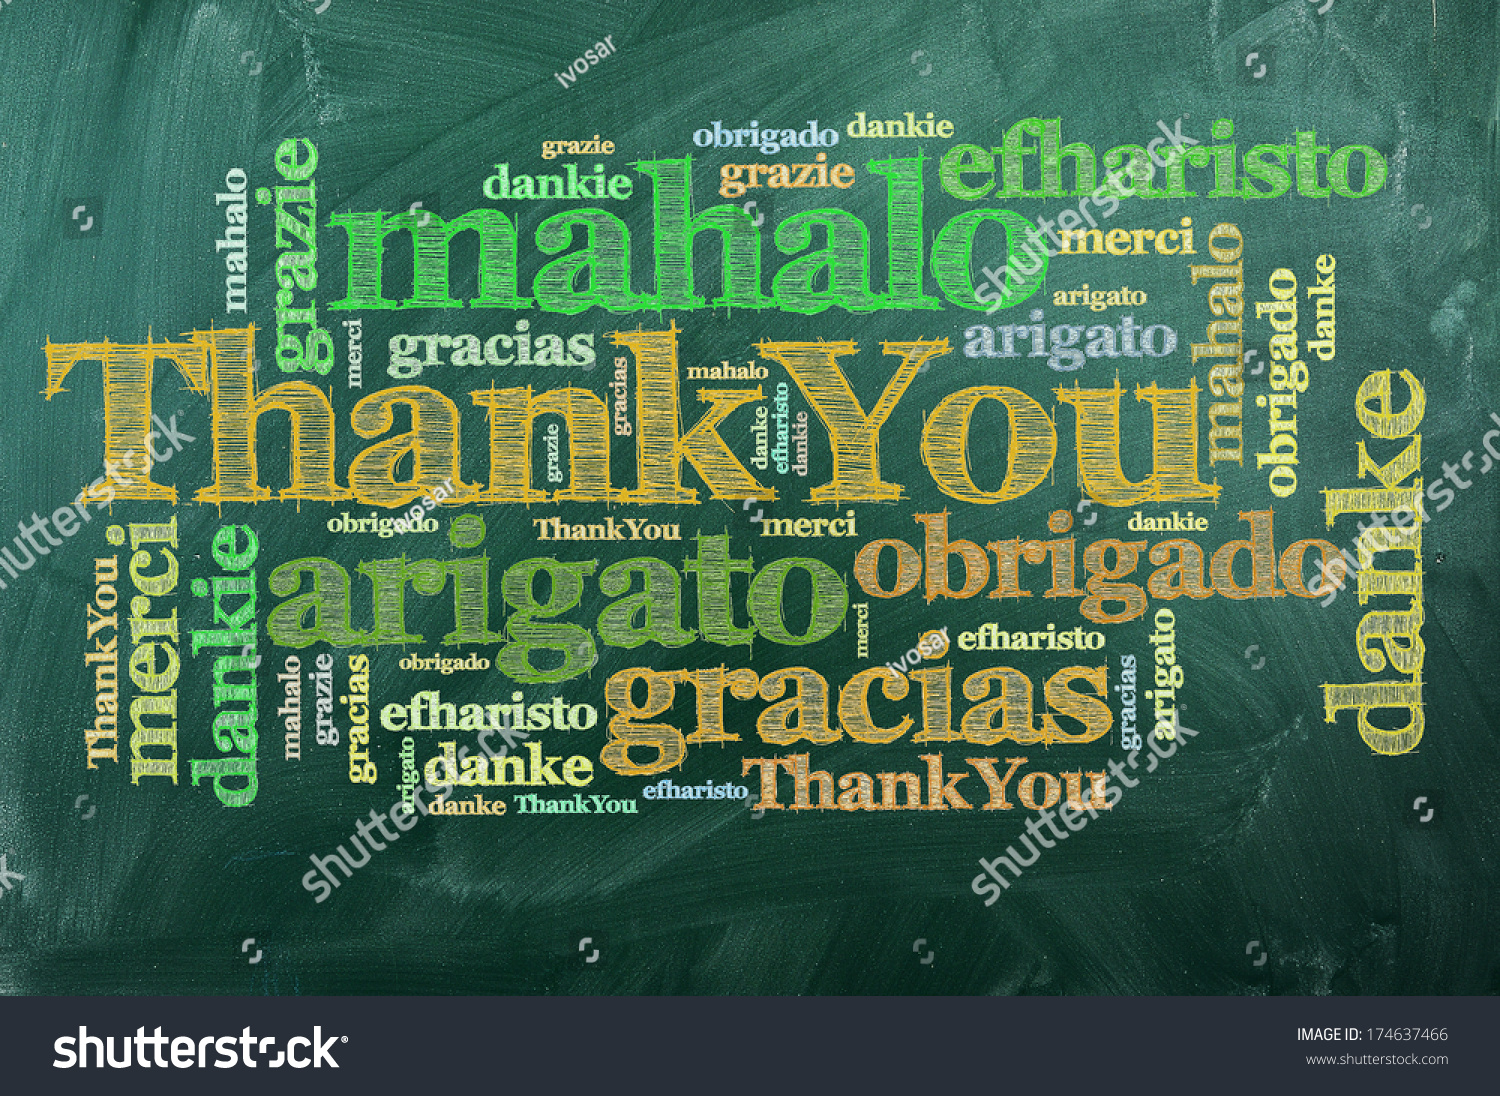 Thank you in different languages on green chalkboard stock for Green in different languages